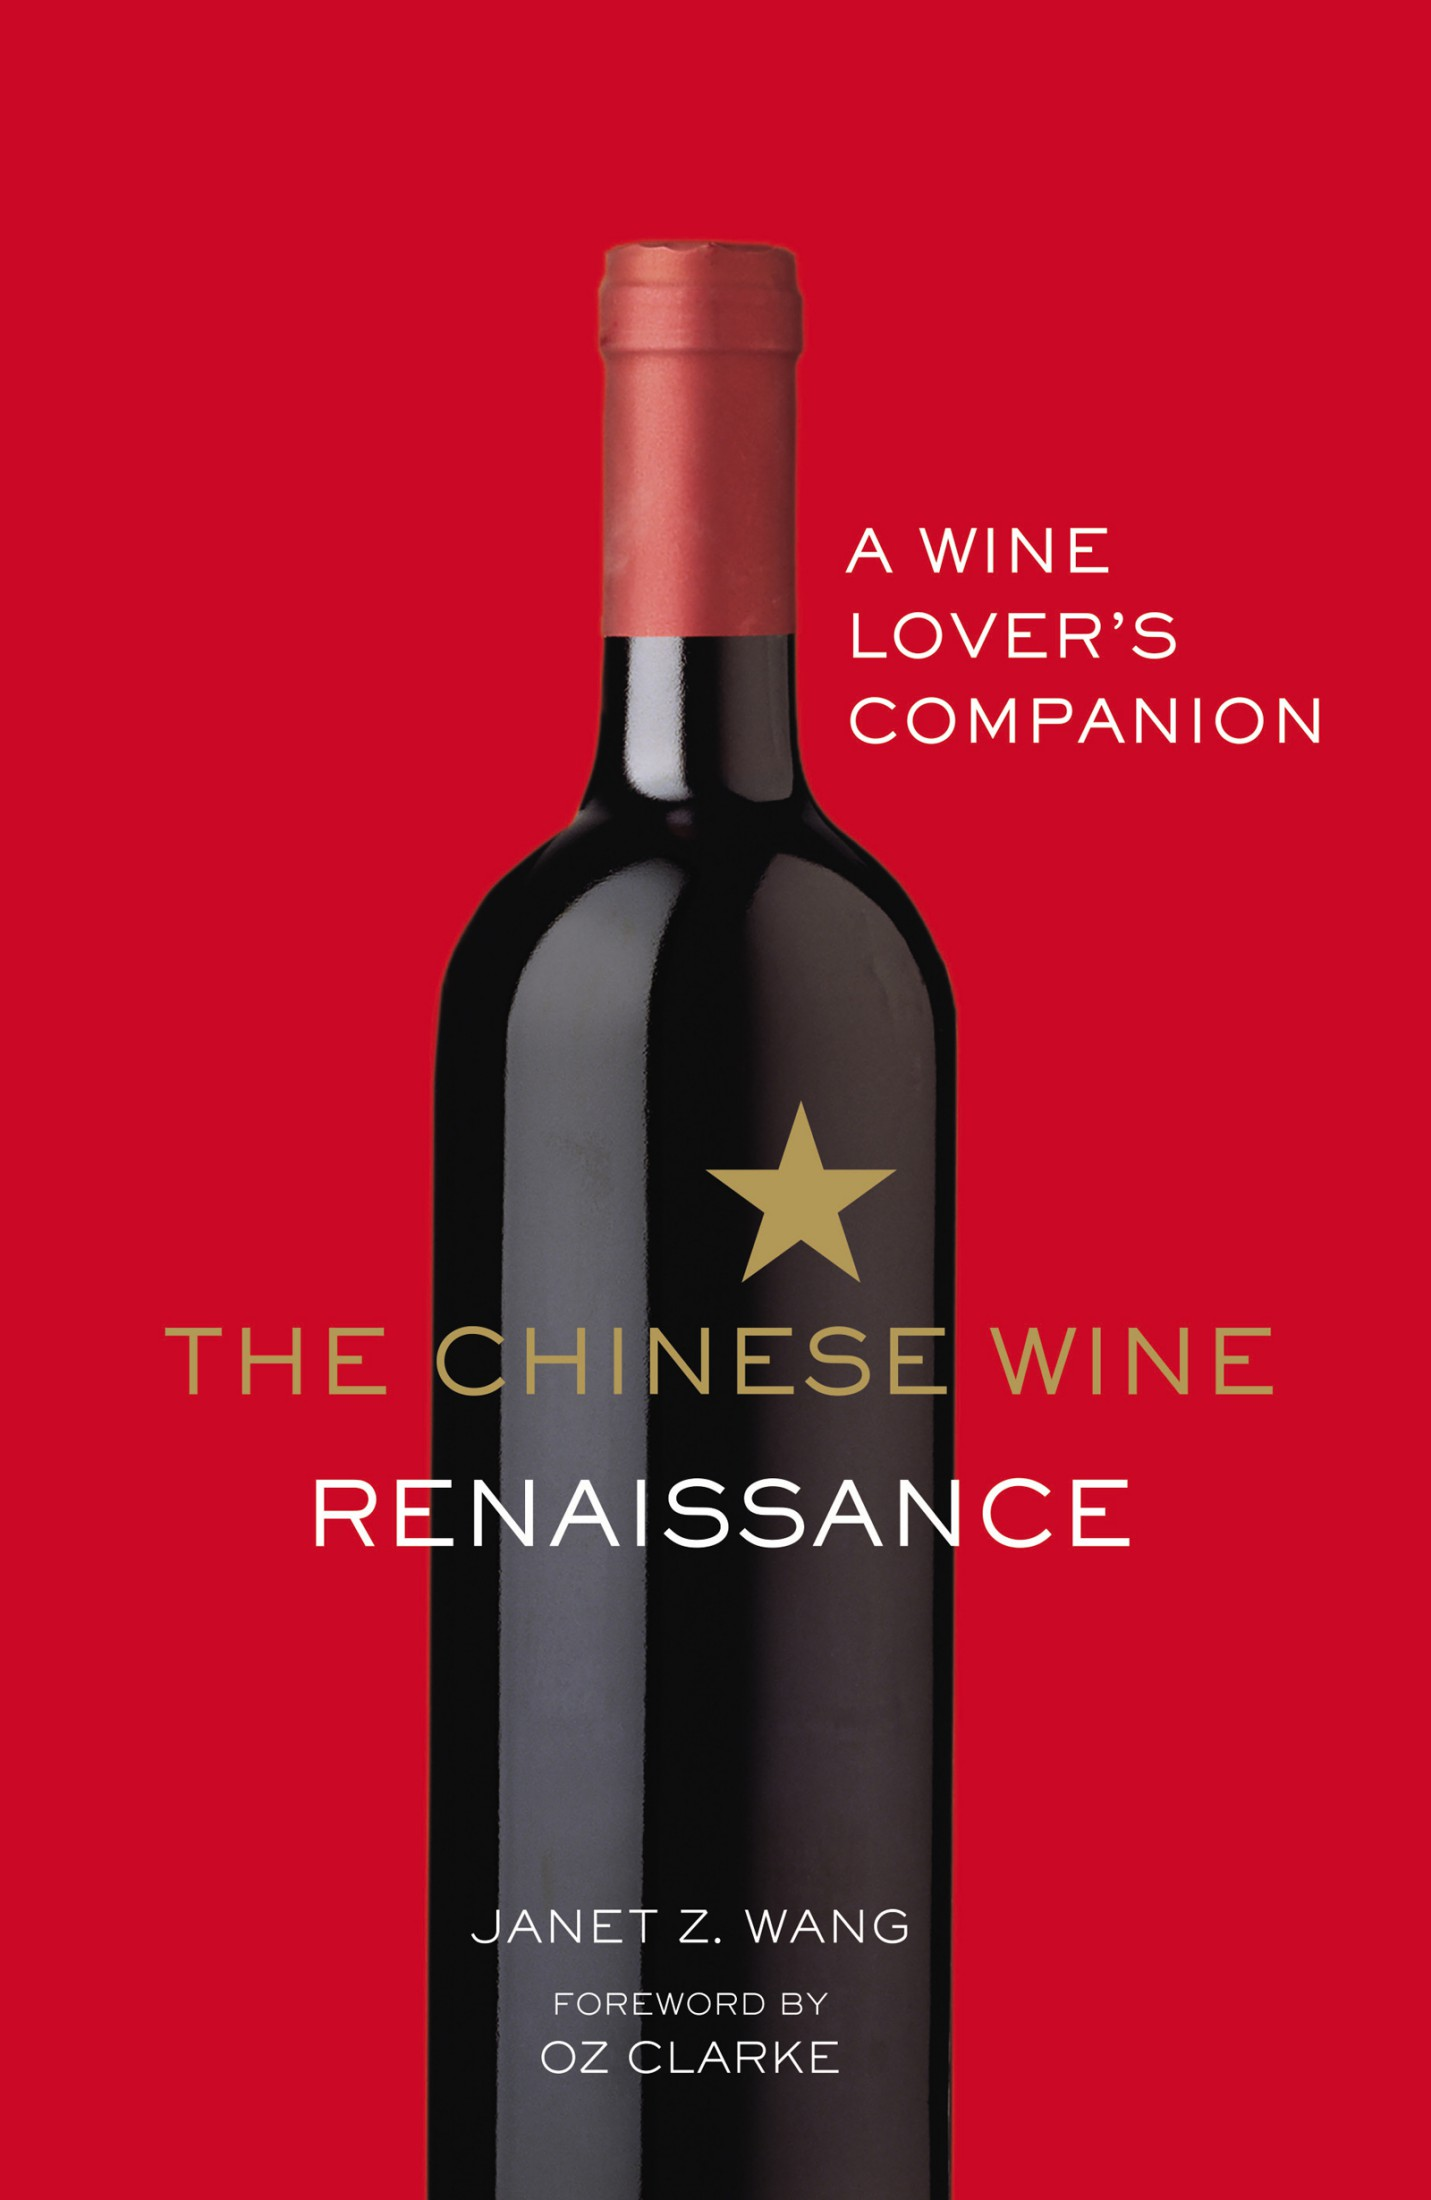 The Chinese Wine Renaissance: A Wine Lover's Companion